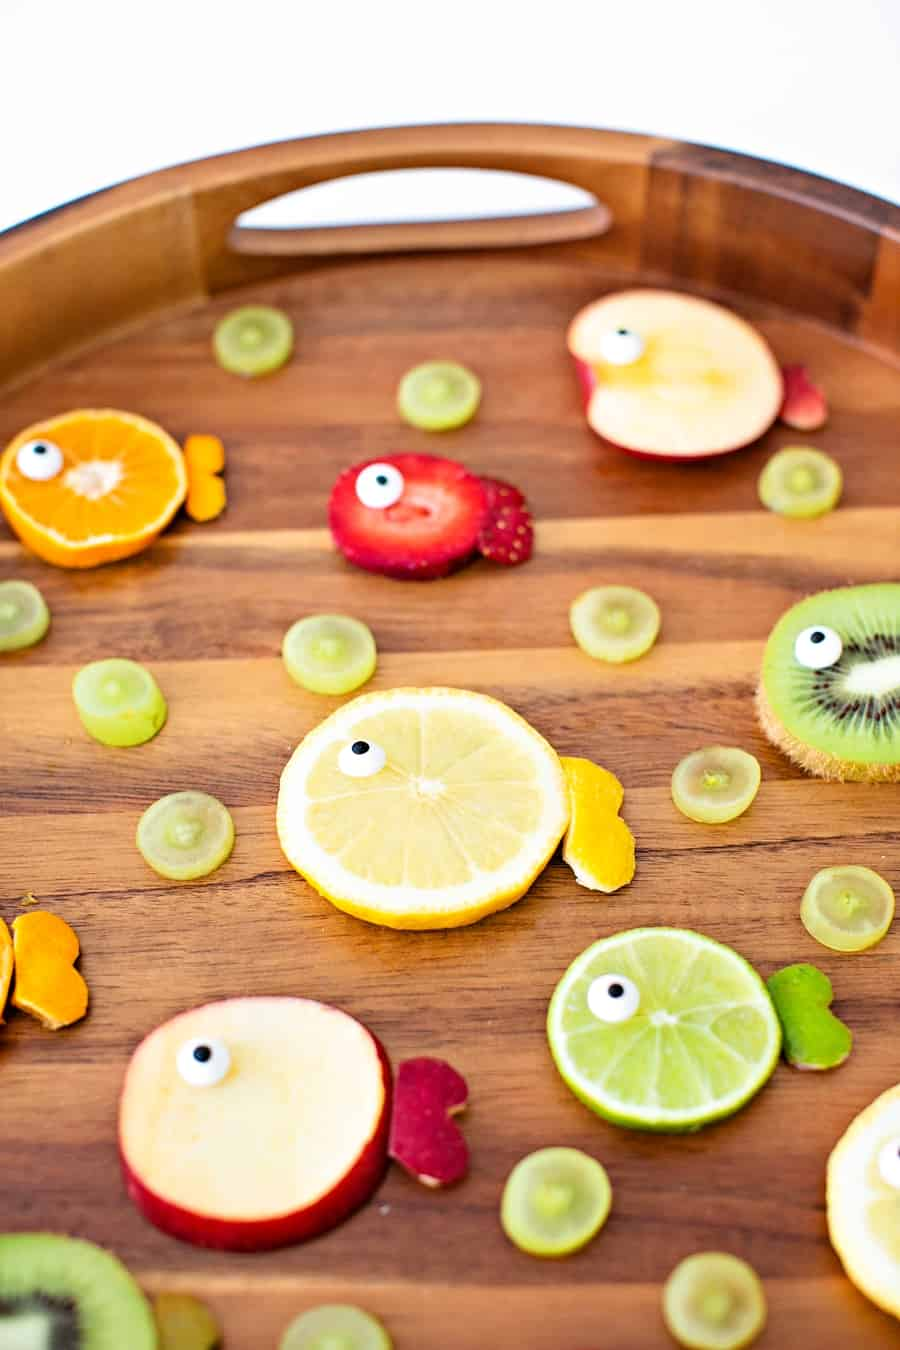 oranges, limes, kiwi and apples cut to resemble fish fruit for a kid snack